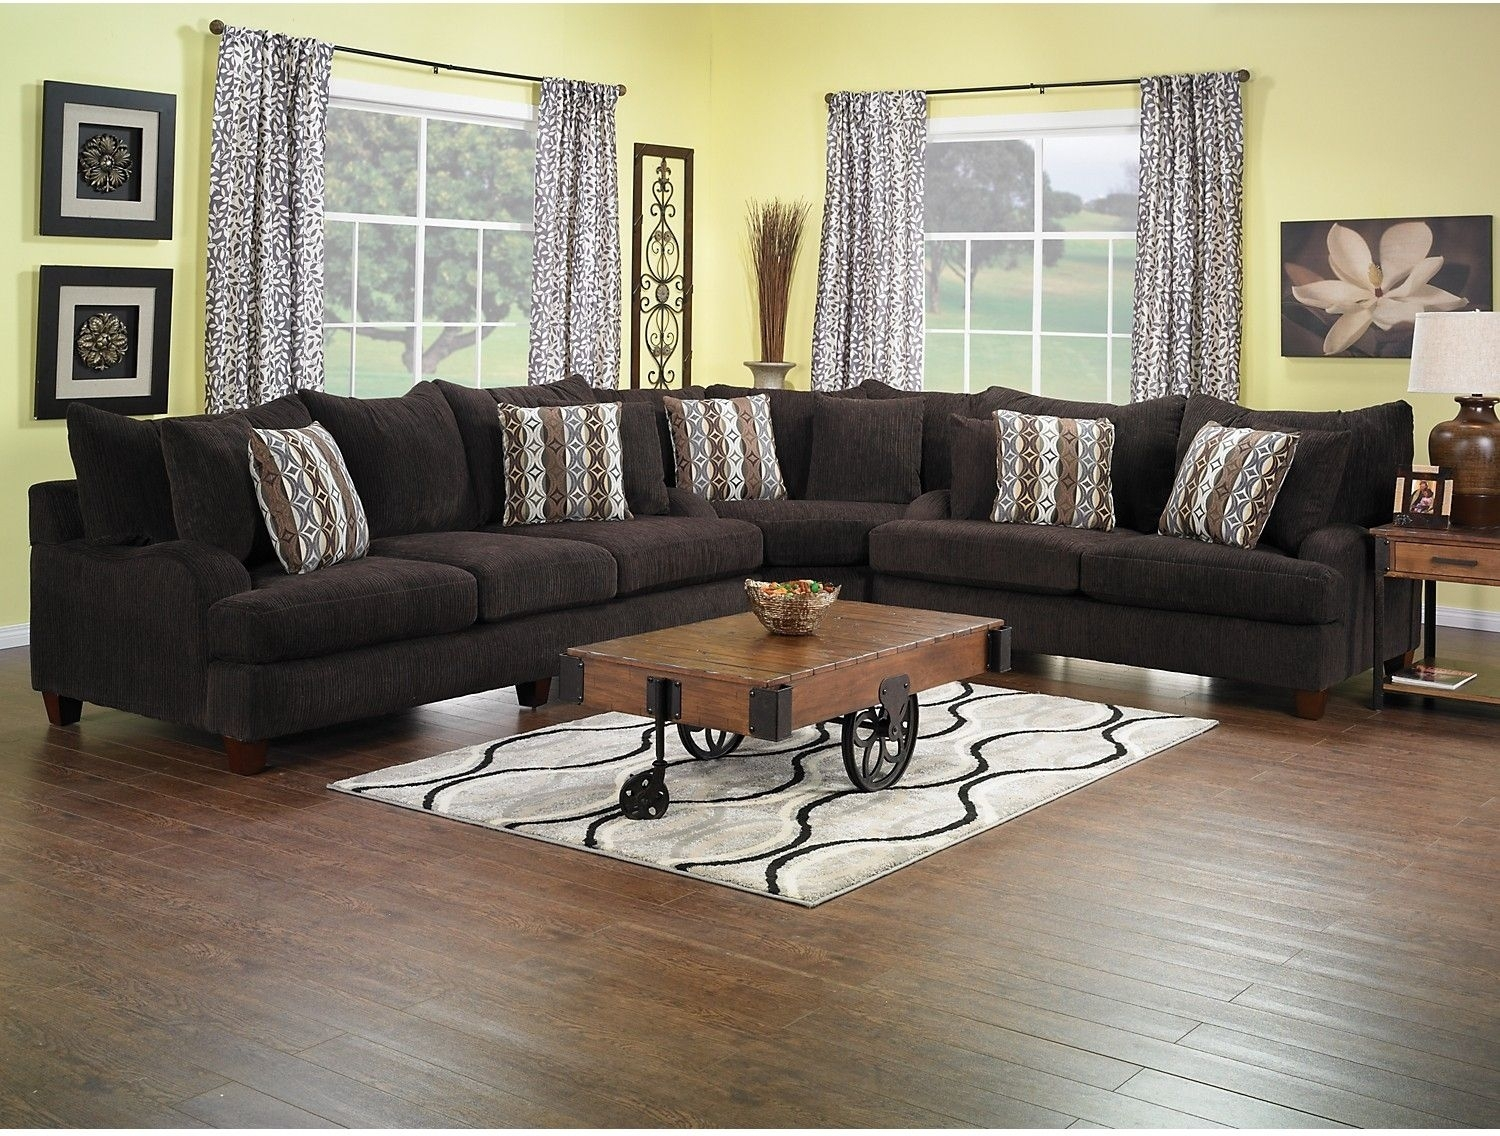 Putty Chenille 3-Piece Sectional - Chocolate | Living Room Furniture with regard to Sectional Sofas at the Brick (Image 13 of 15)